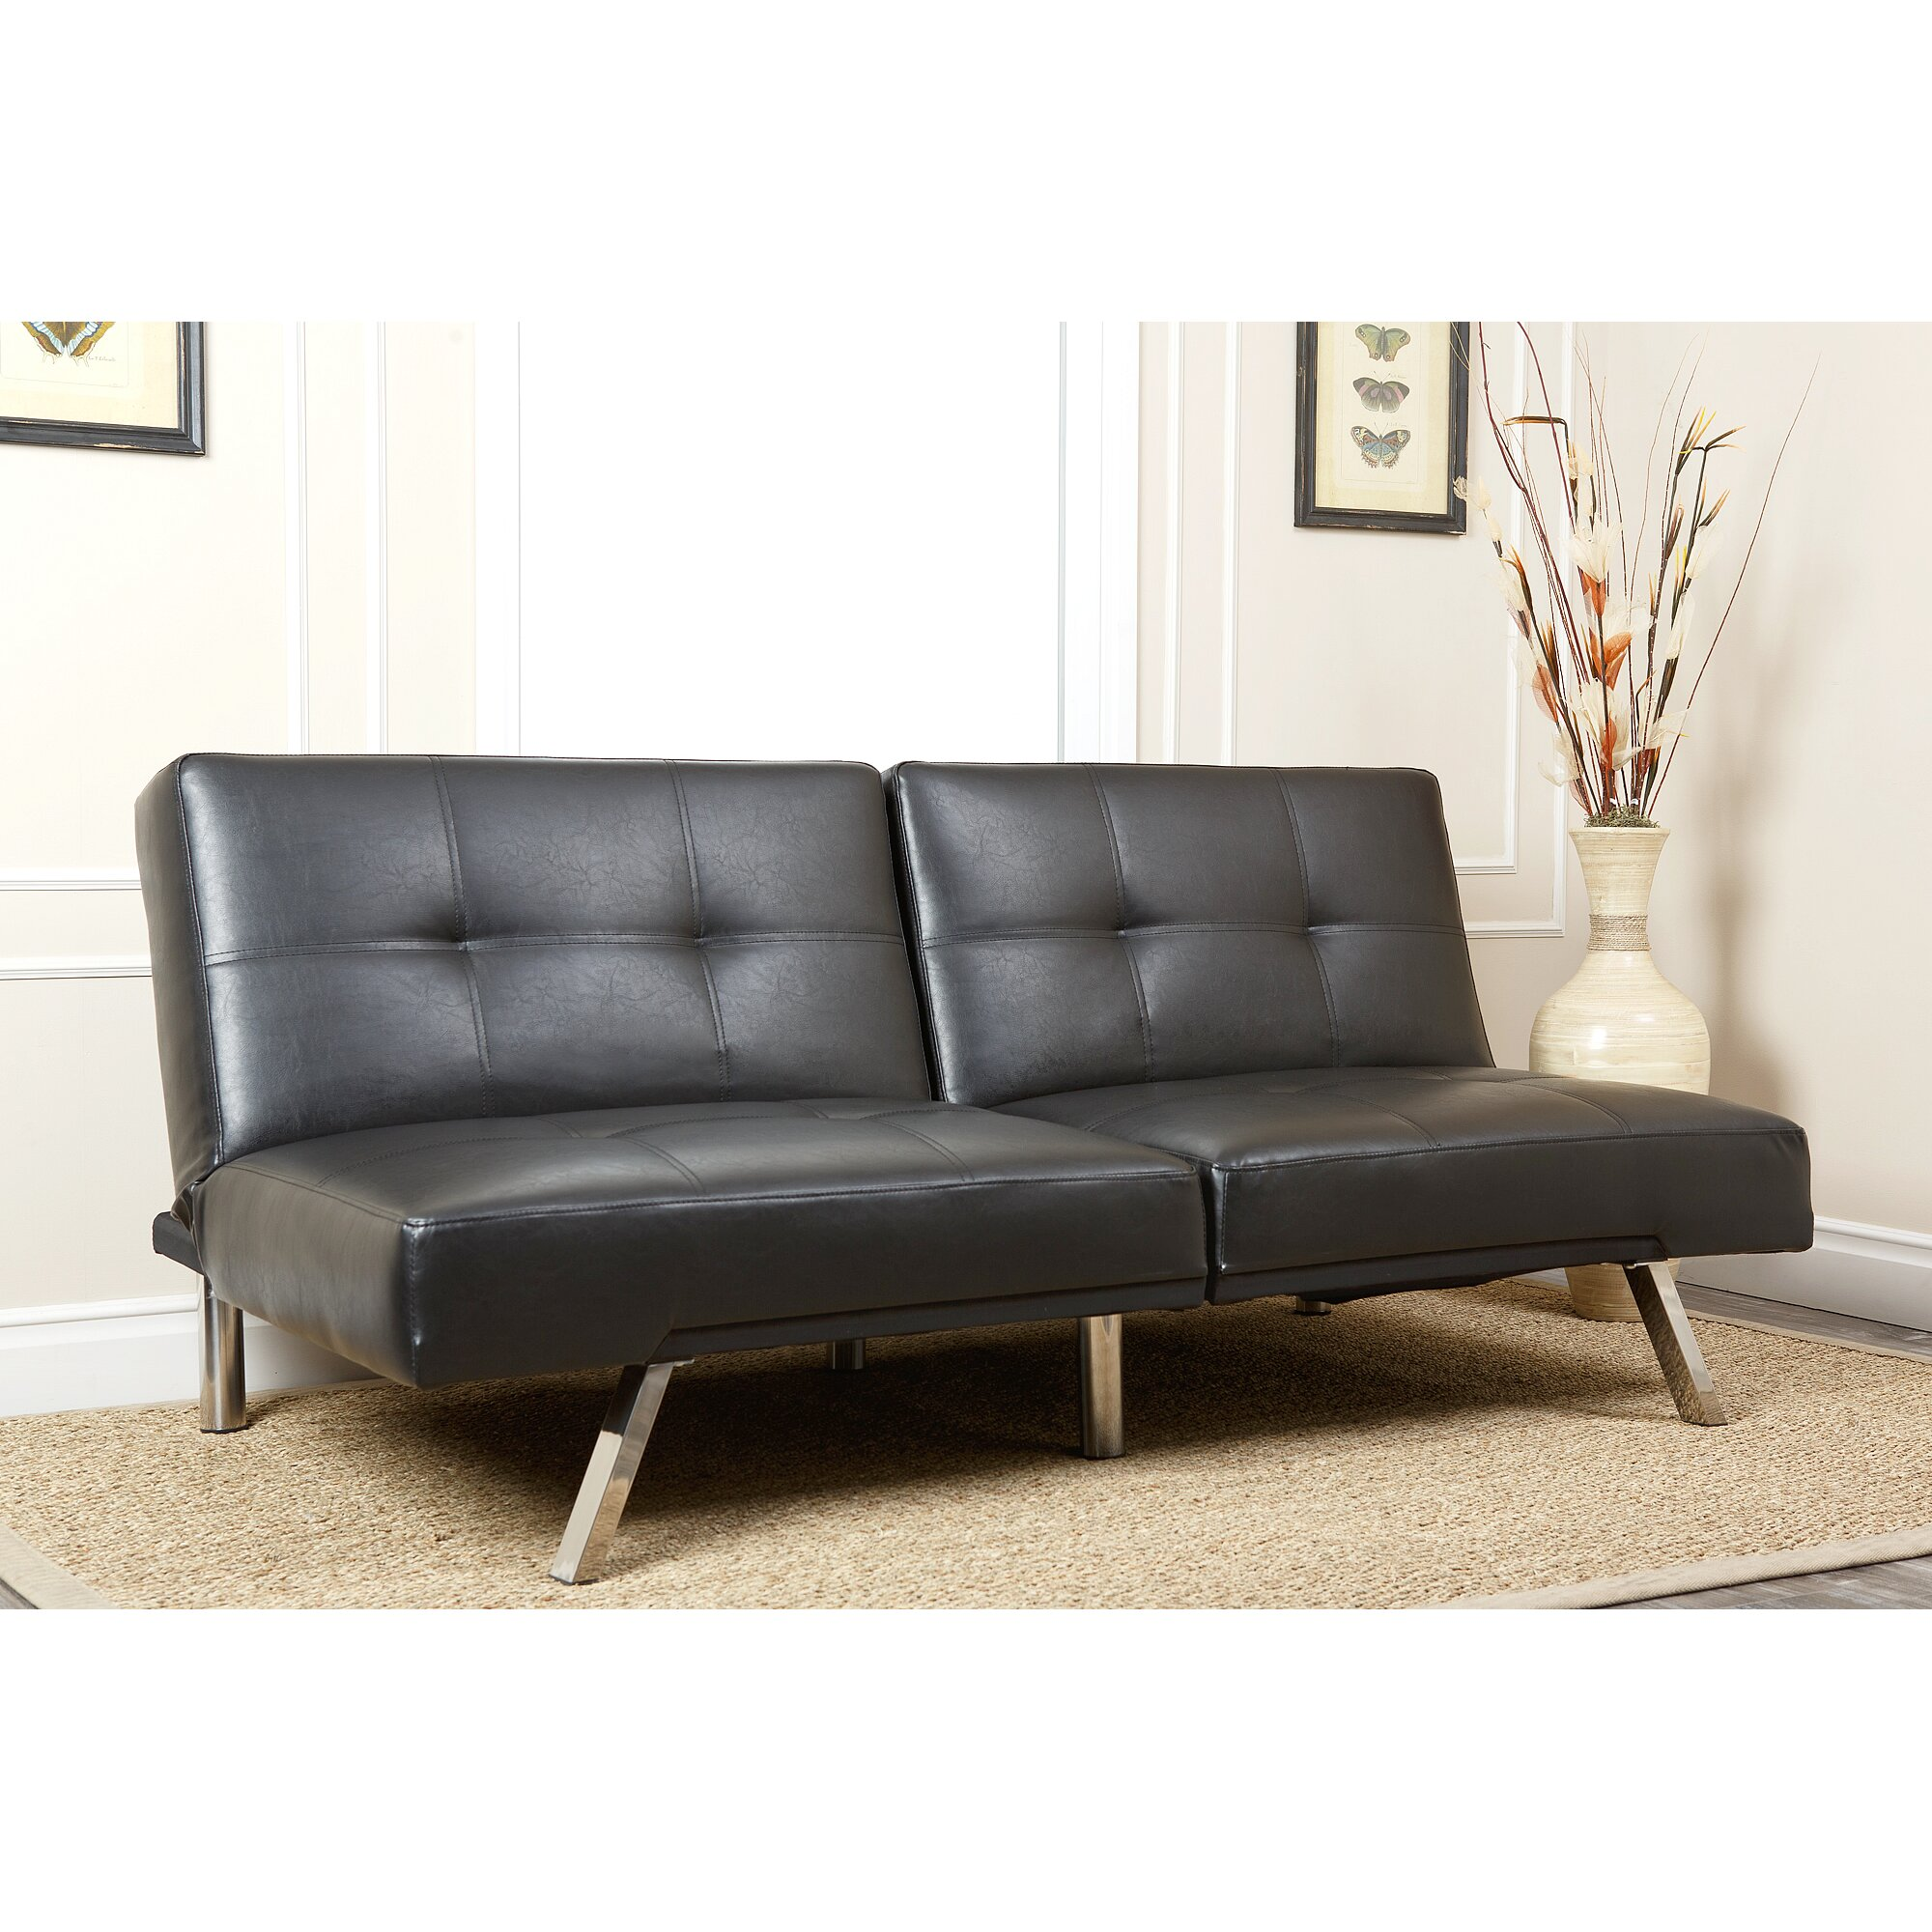 Convertible Ottoman Chair Costco: Abbyson Living Aspen Convertible Sleeper Sofa & Reviews